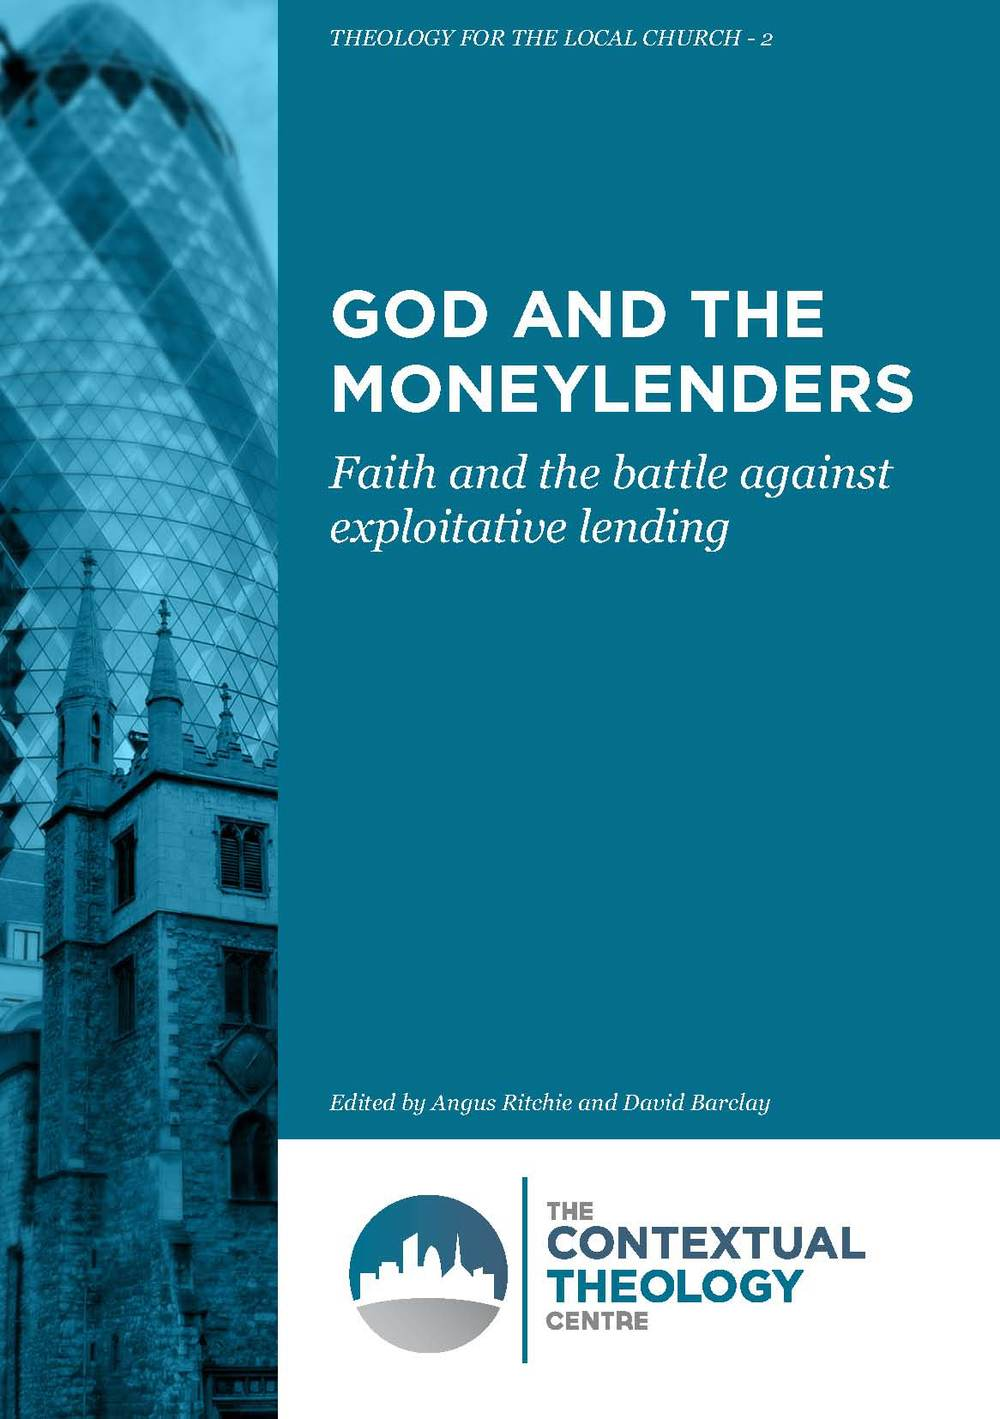 God and the moneylenders: Faith and the battle against exploitative lending The Centre for Theology & Community Download PDF (2.5Mb)